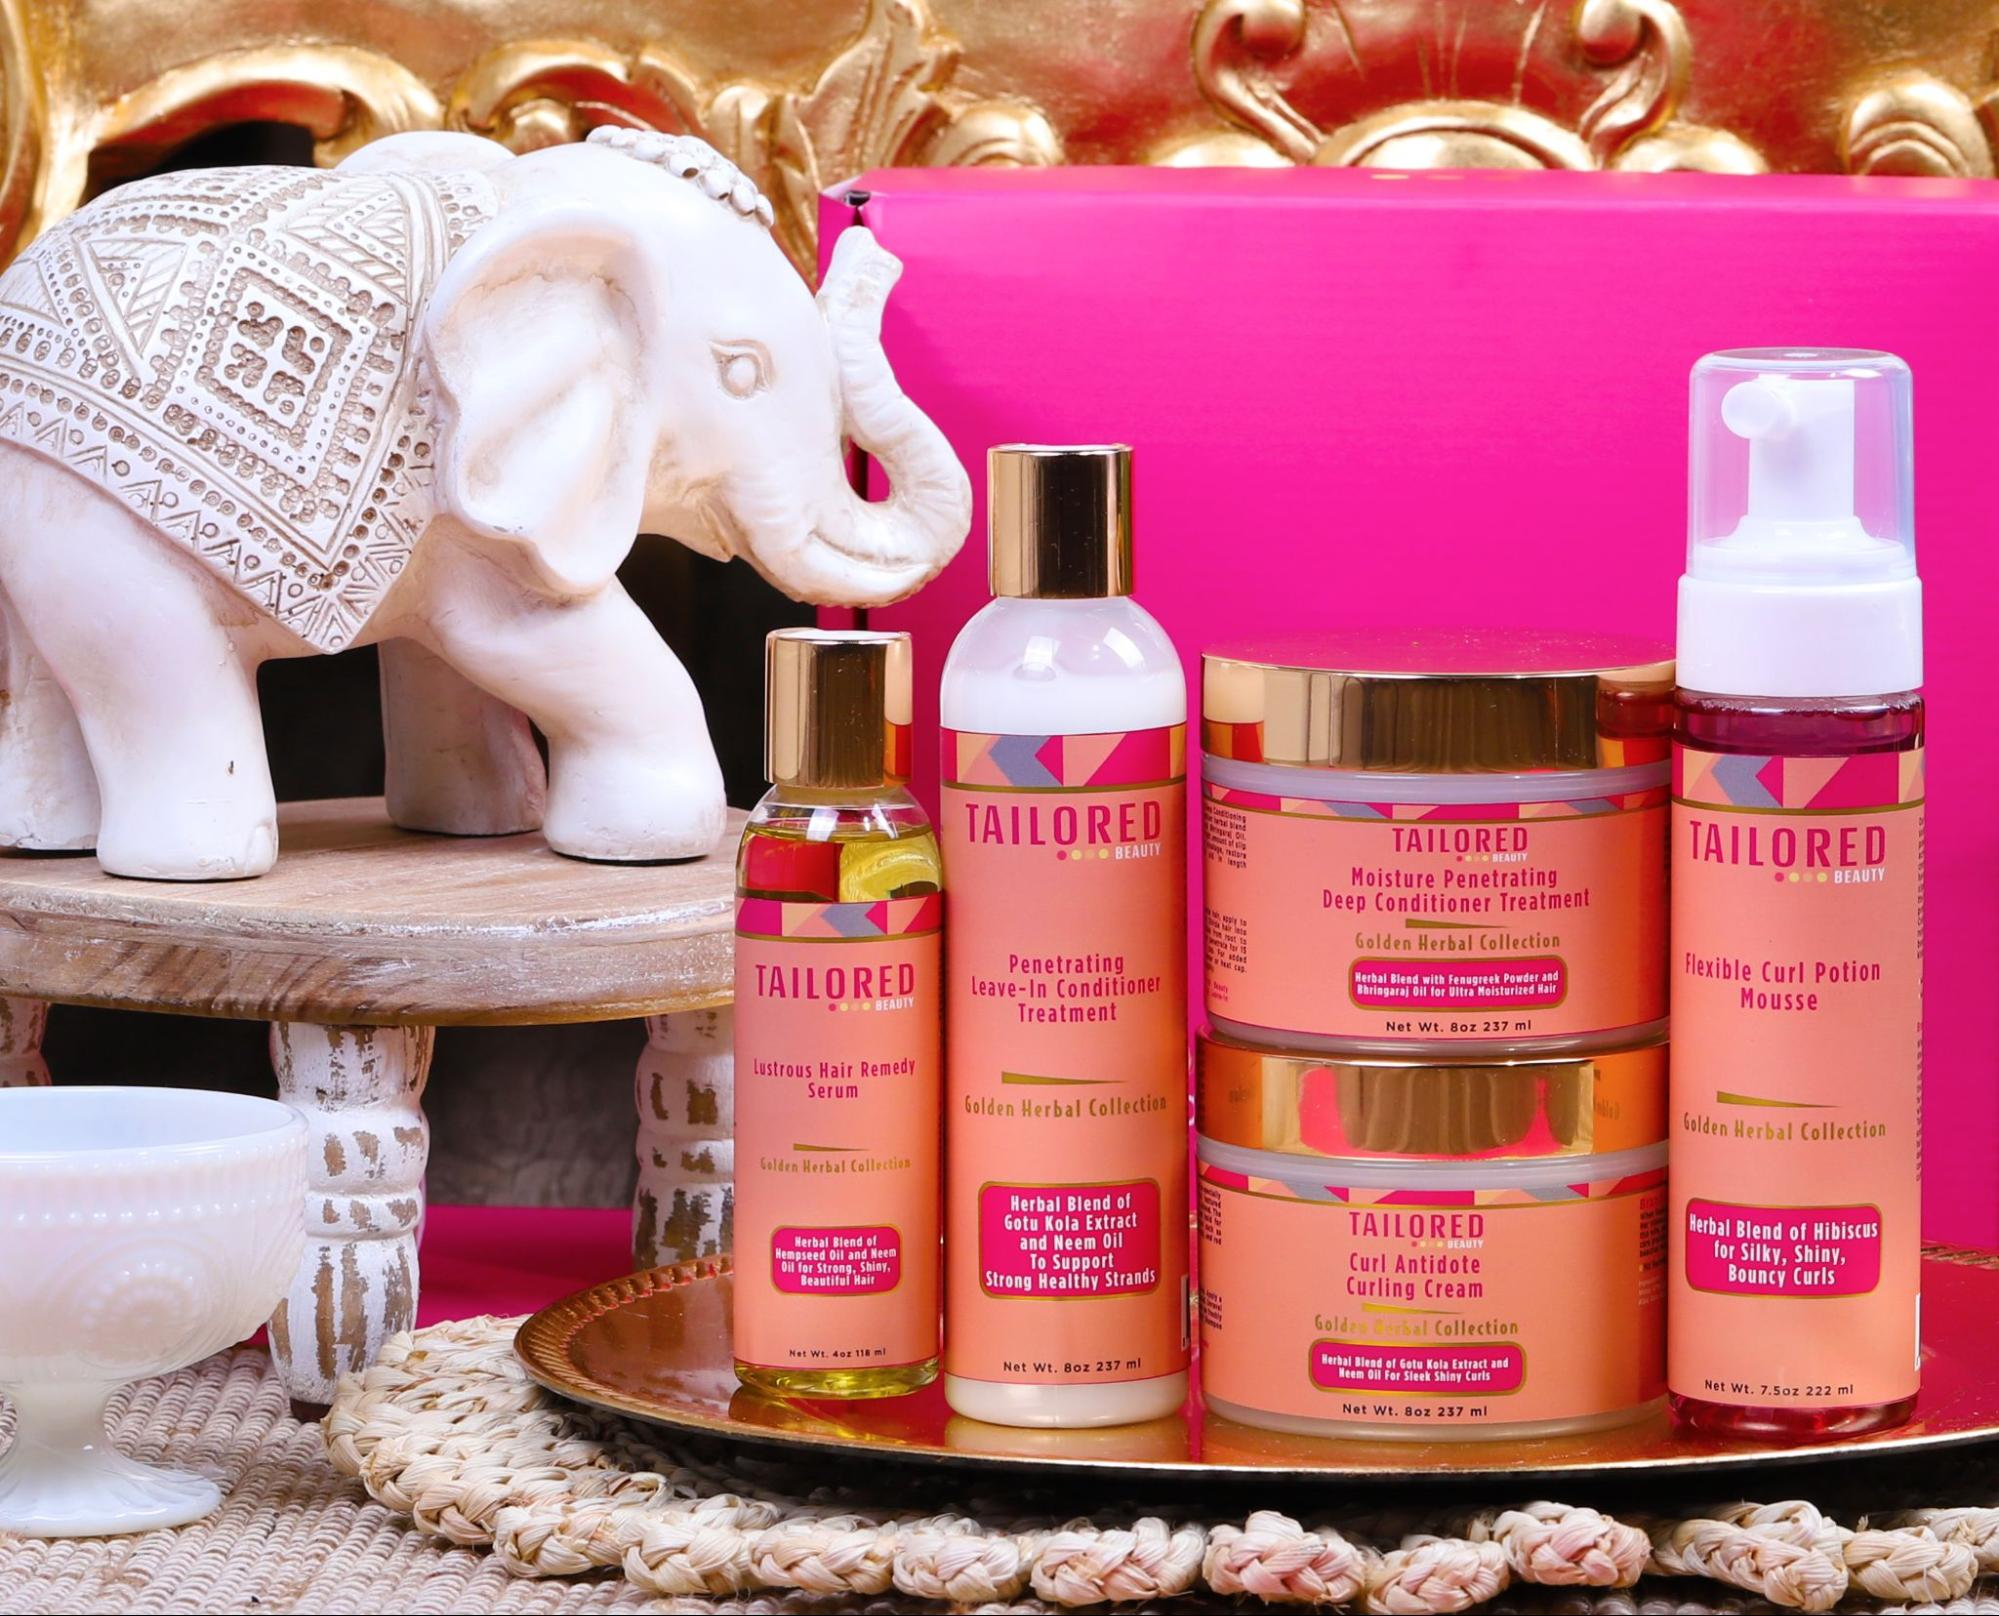 Tailored Beauty products backdropped by a pink background along with an elephant statue and a golden frame.